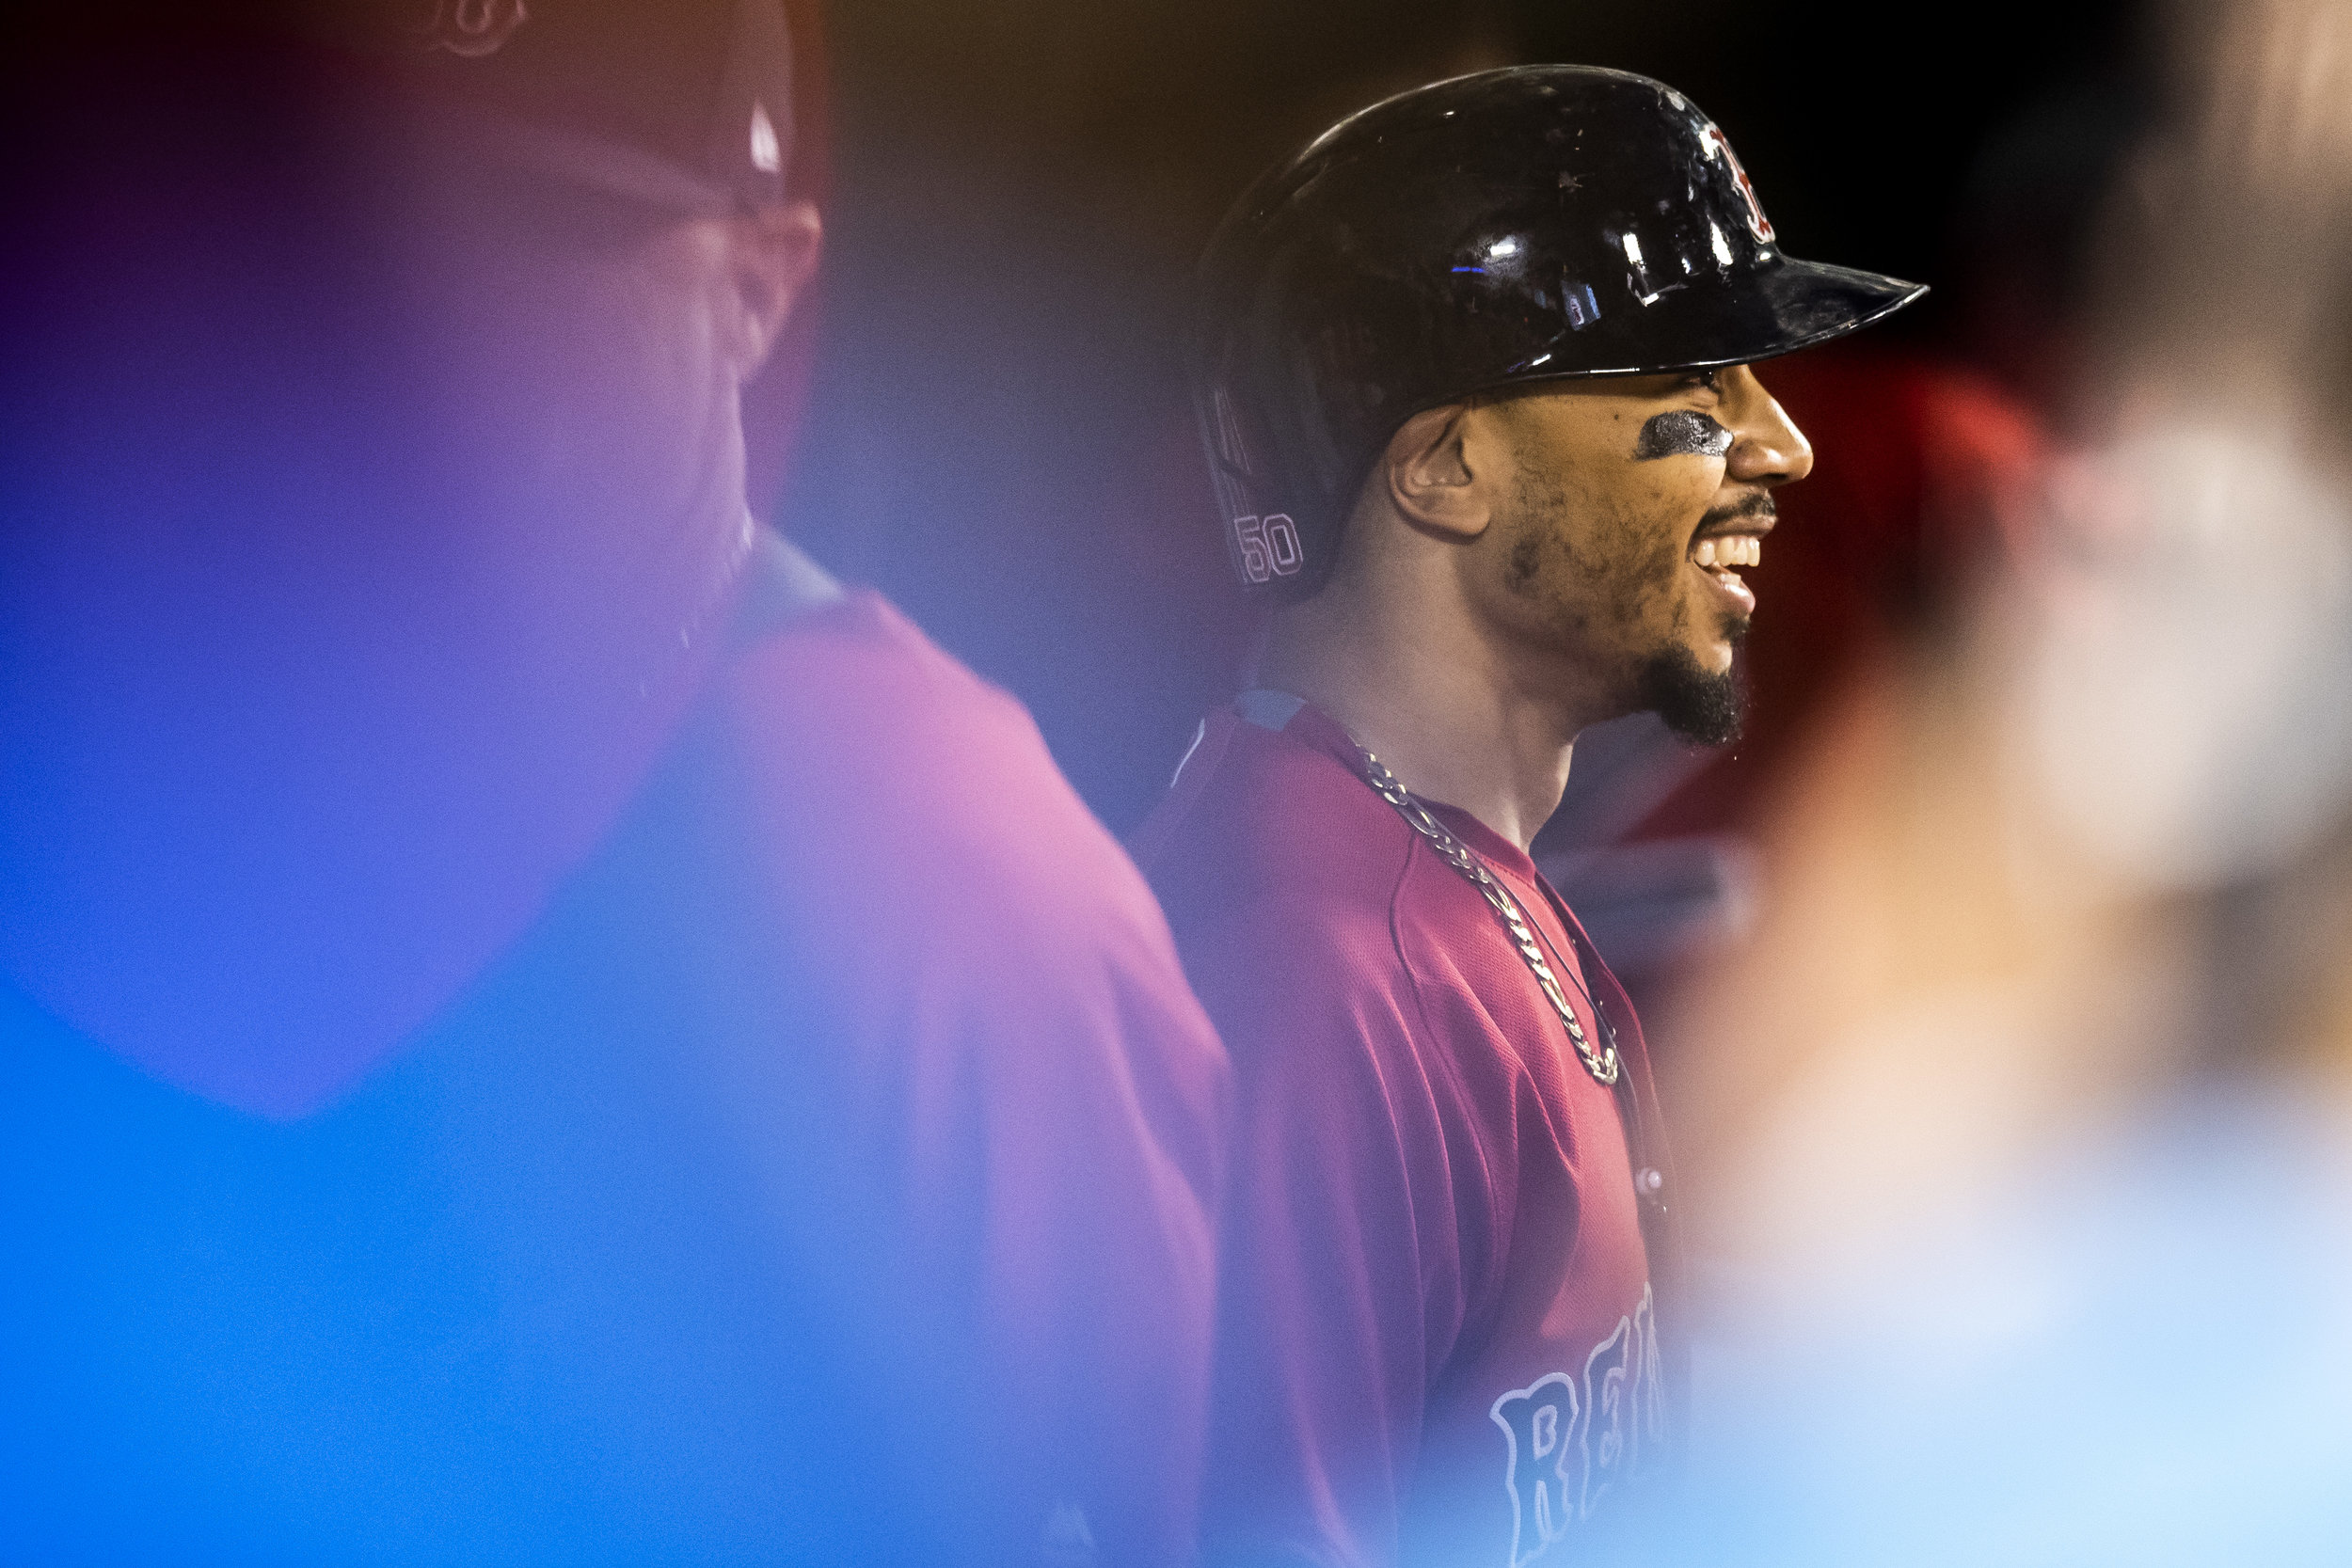 May 25, 2018, Boston, MA: Boston Red Sox outfielder Mookie Betts cracks a smile in the dugout after hitting a home run as the Boston Red Sox face the Atlanta Braves at Fenway Park in Boston, Massachusetts on Friday, May 25, 2018. (Photo by Matthew Thomas/Boston Red Sox)